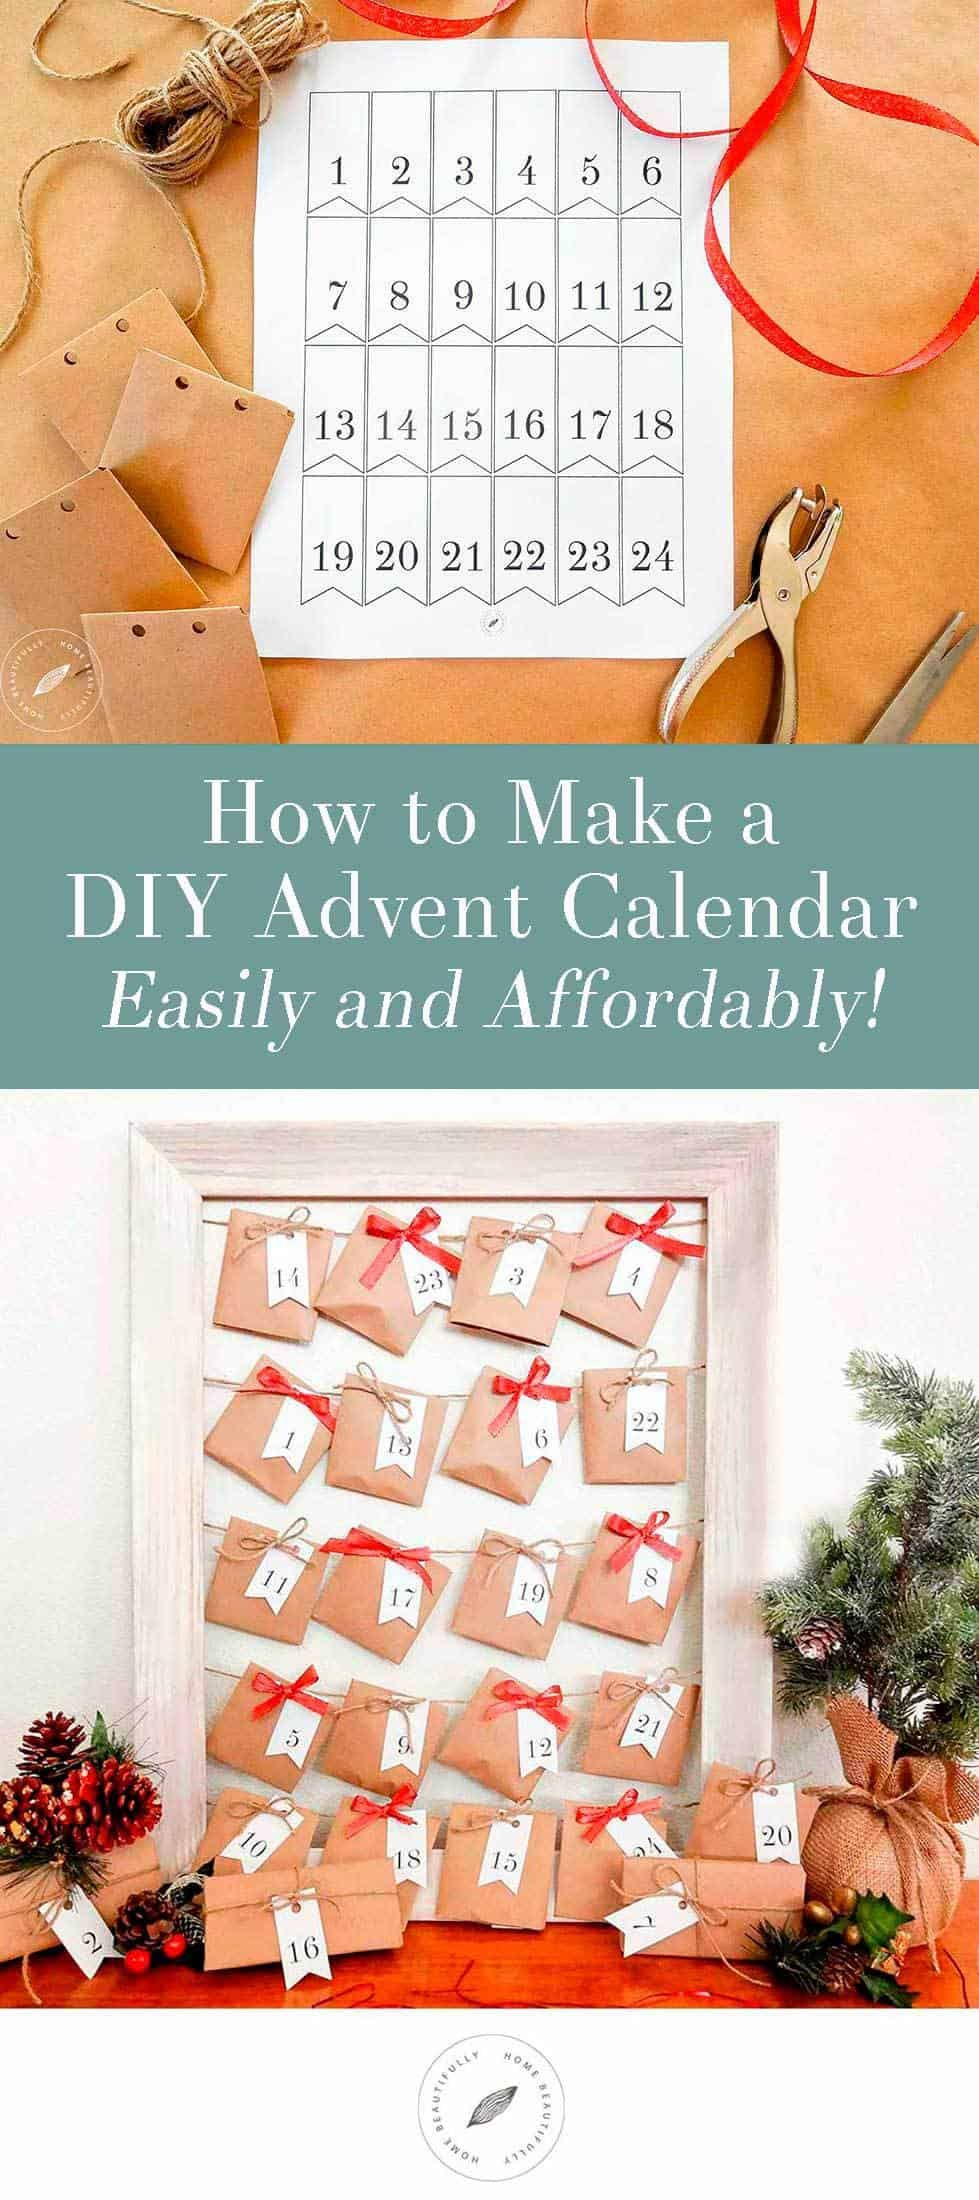 Diy Advent Calendar For Adults : How to create a easy fun diy advent calendar advent calendars